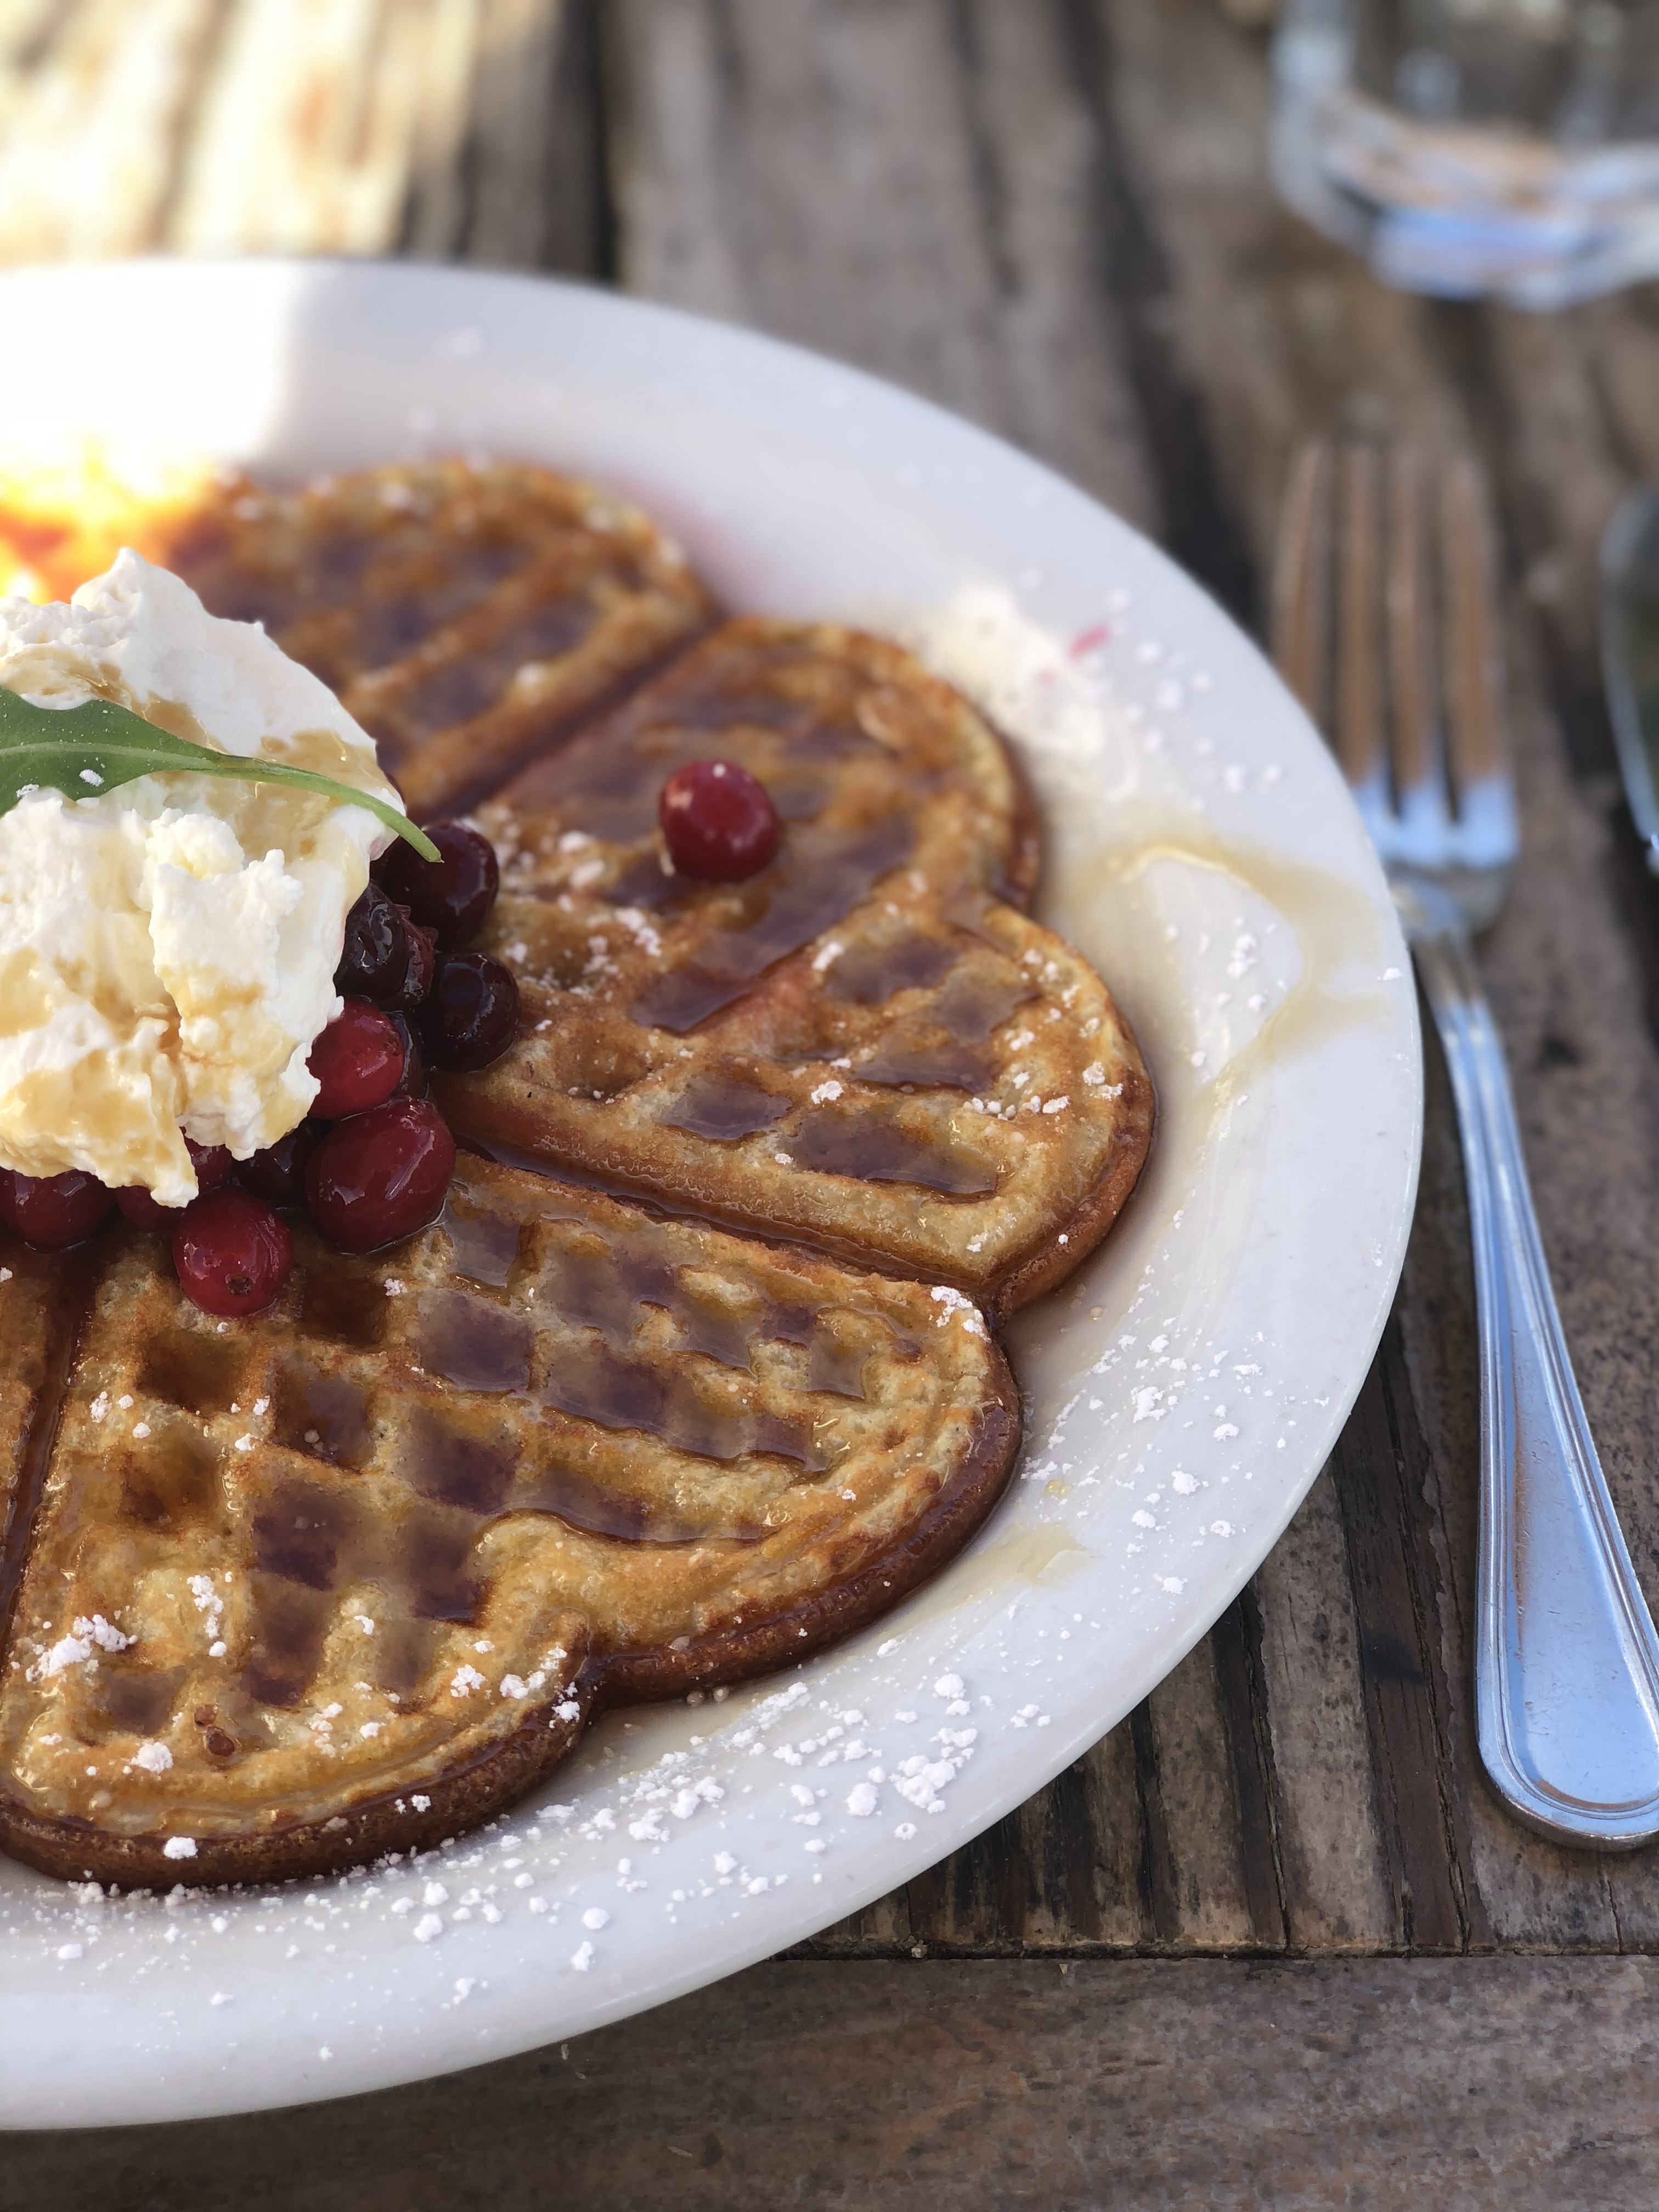 selective focus photography of belgian waffle on plate